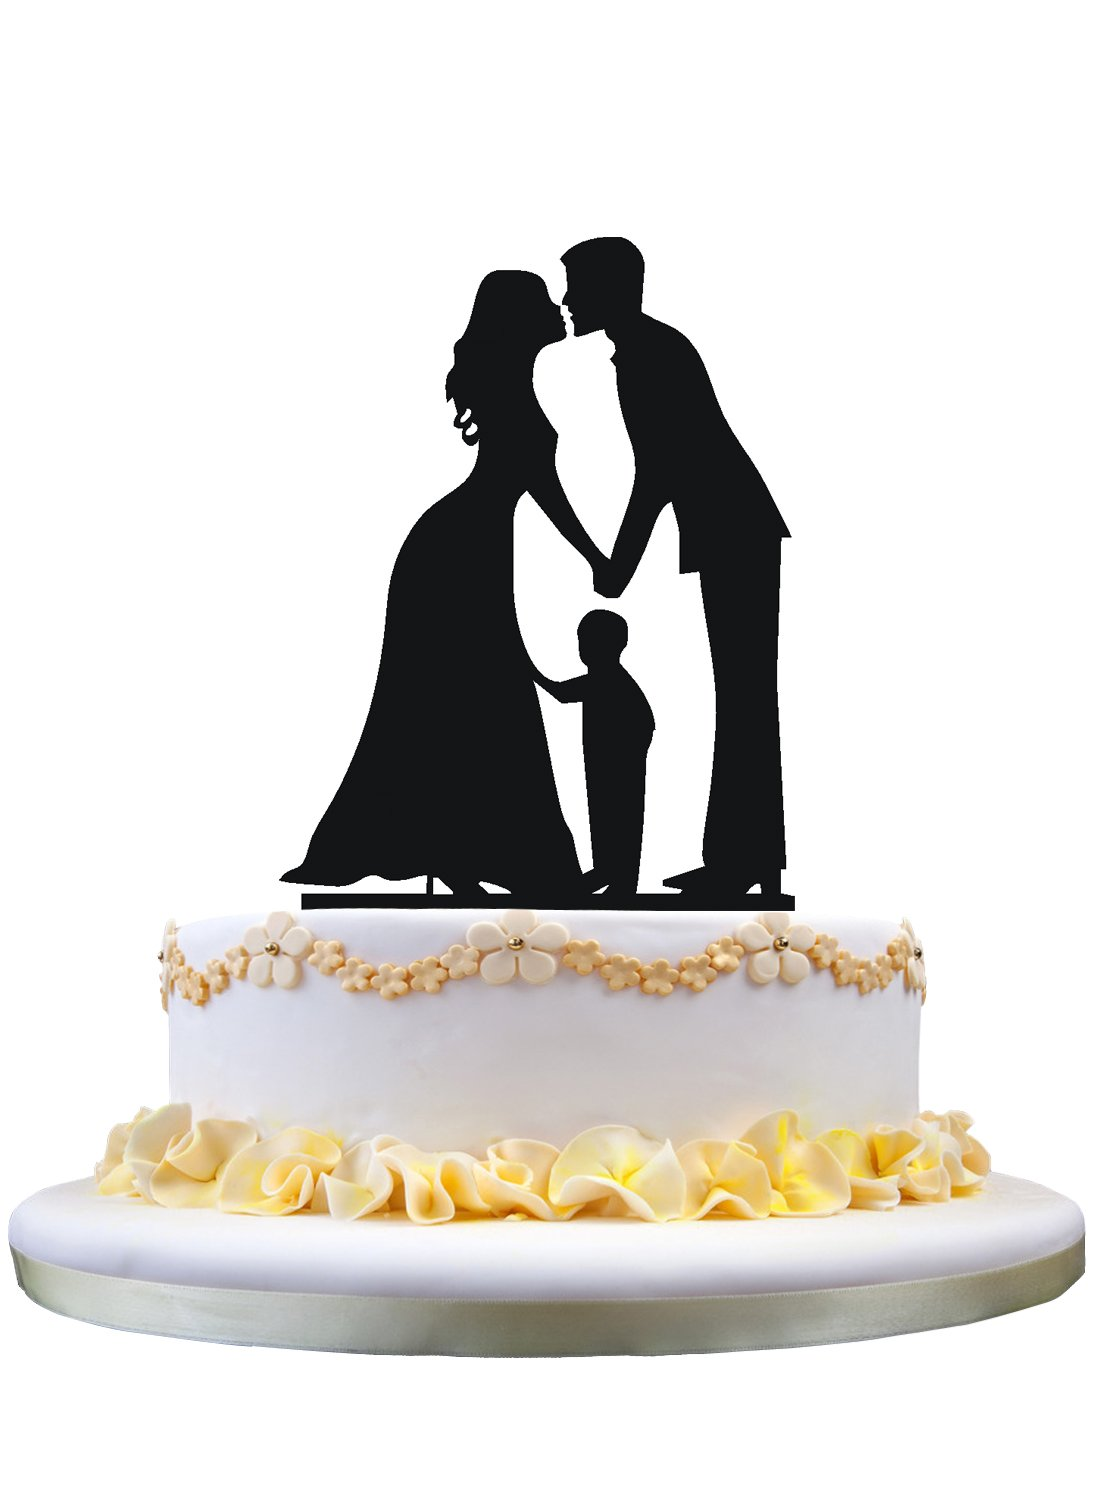 Family Cake Topper Silhouette Groom and Bride with Little Boy,wedding cake topper